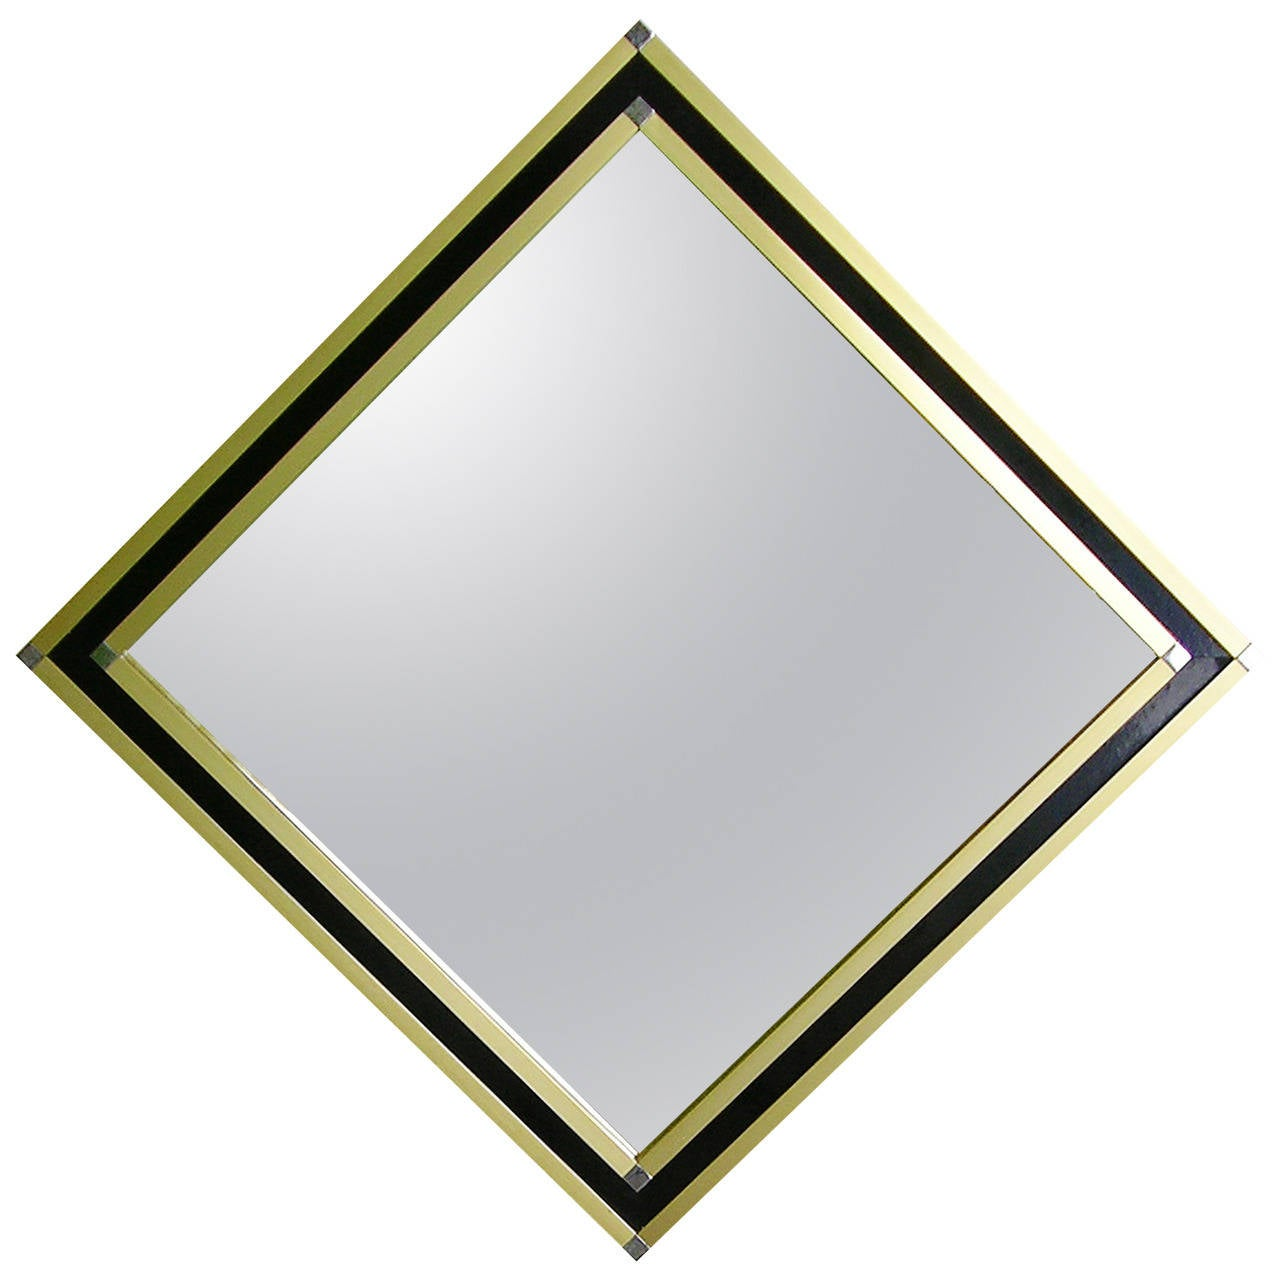 Mario Sabot Italian 1970s Modern Brass and Black Square Mirror For Sale